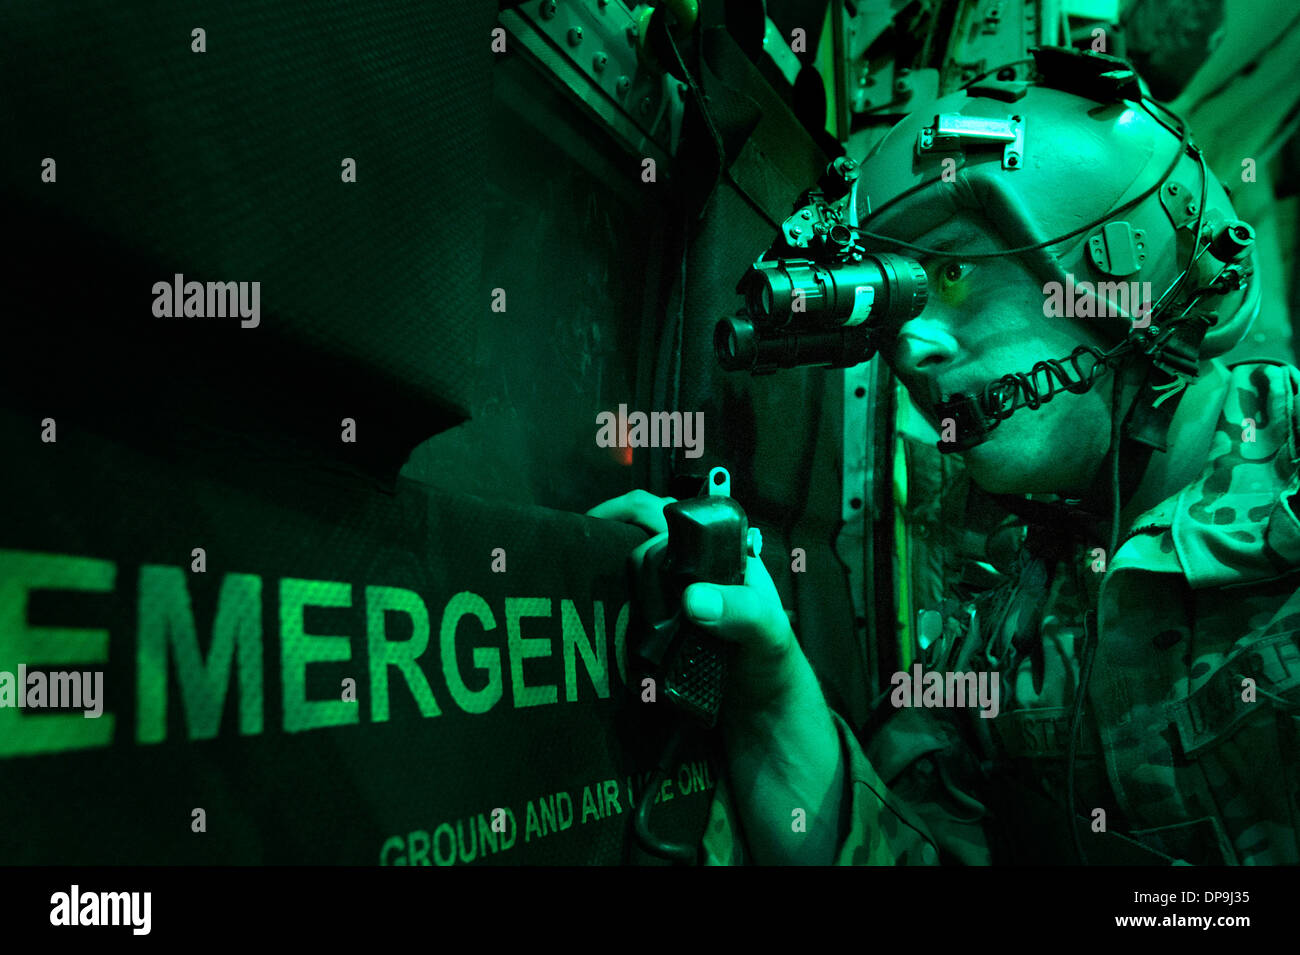 U.S. Air Force Airman uses night vision goggles to scan for potential threats in Afghanistan - Stock Image